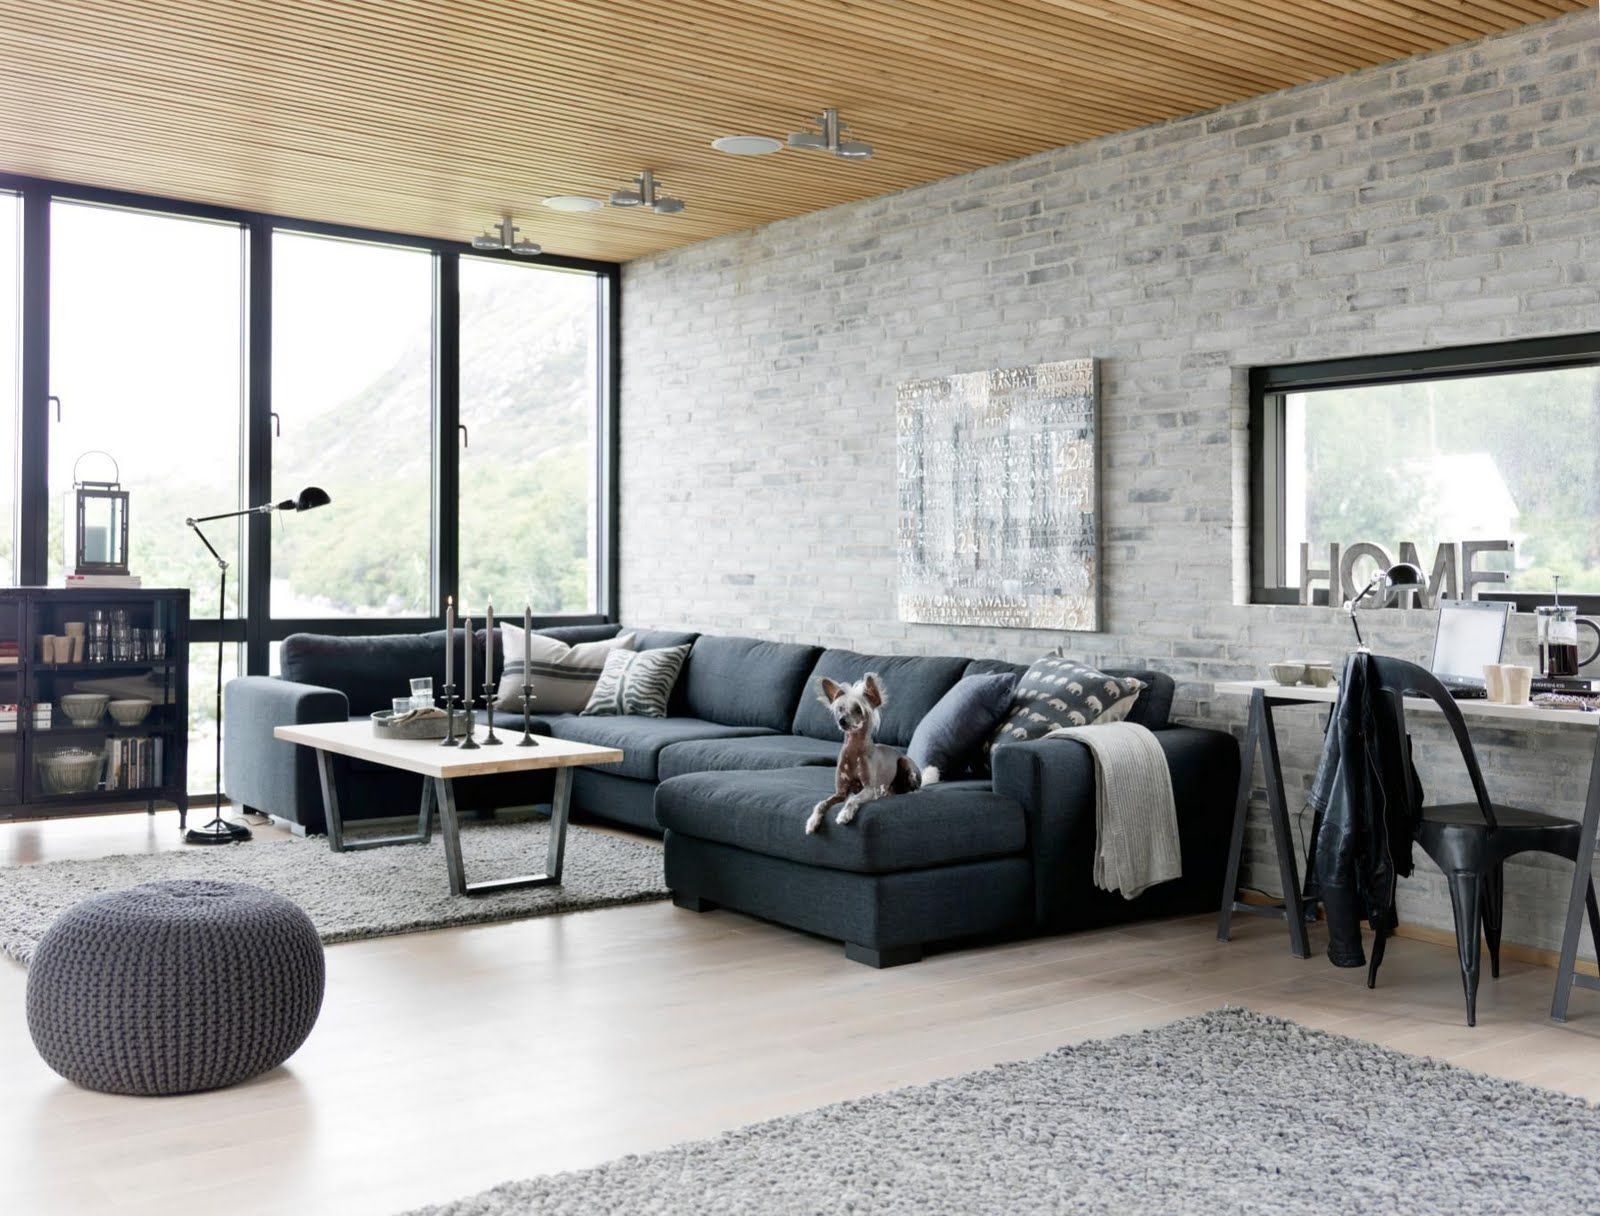 industrial living room furniture top rated 25 best designs home improvement in this post we have gathered a collection of enjoy